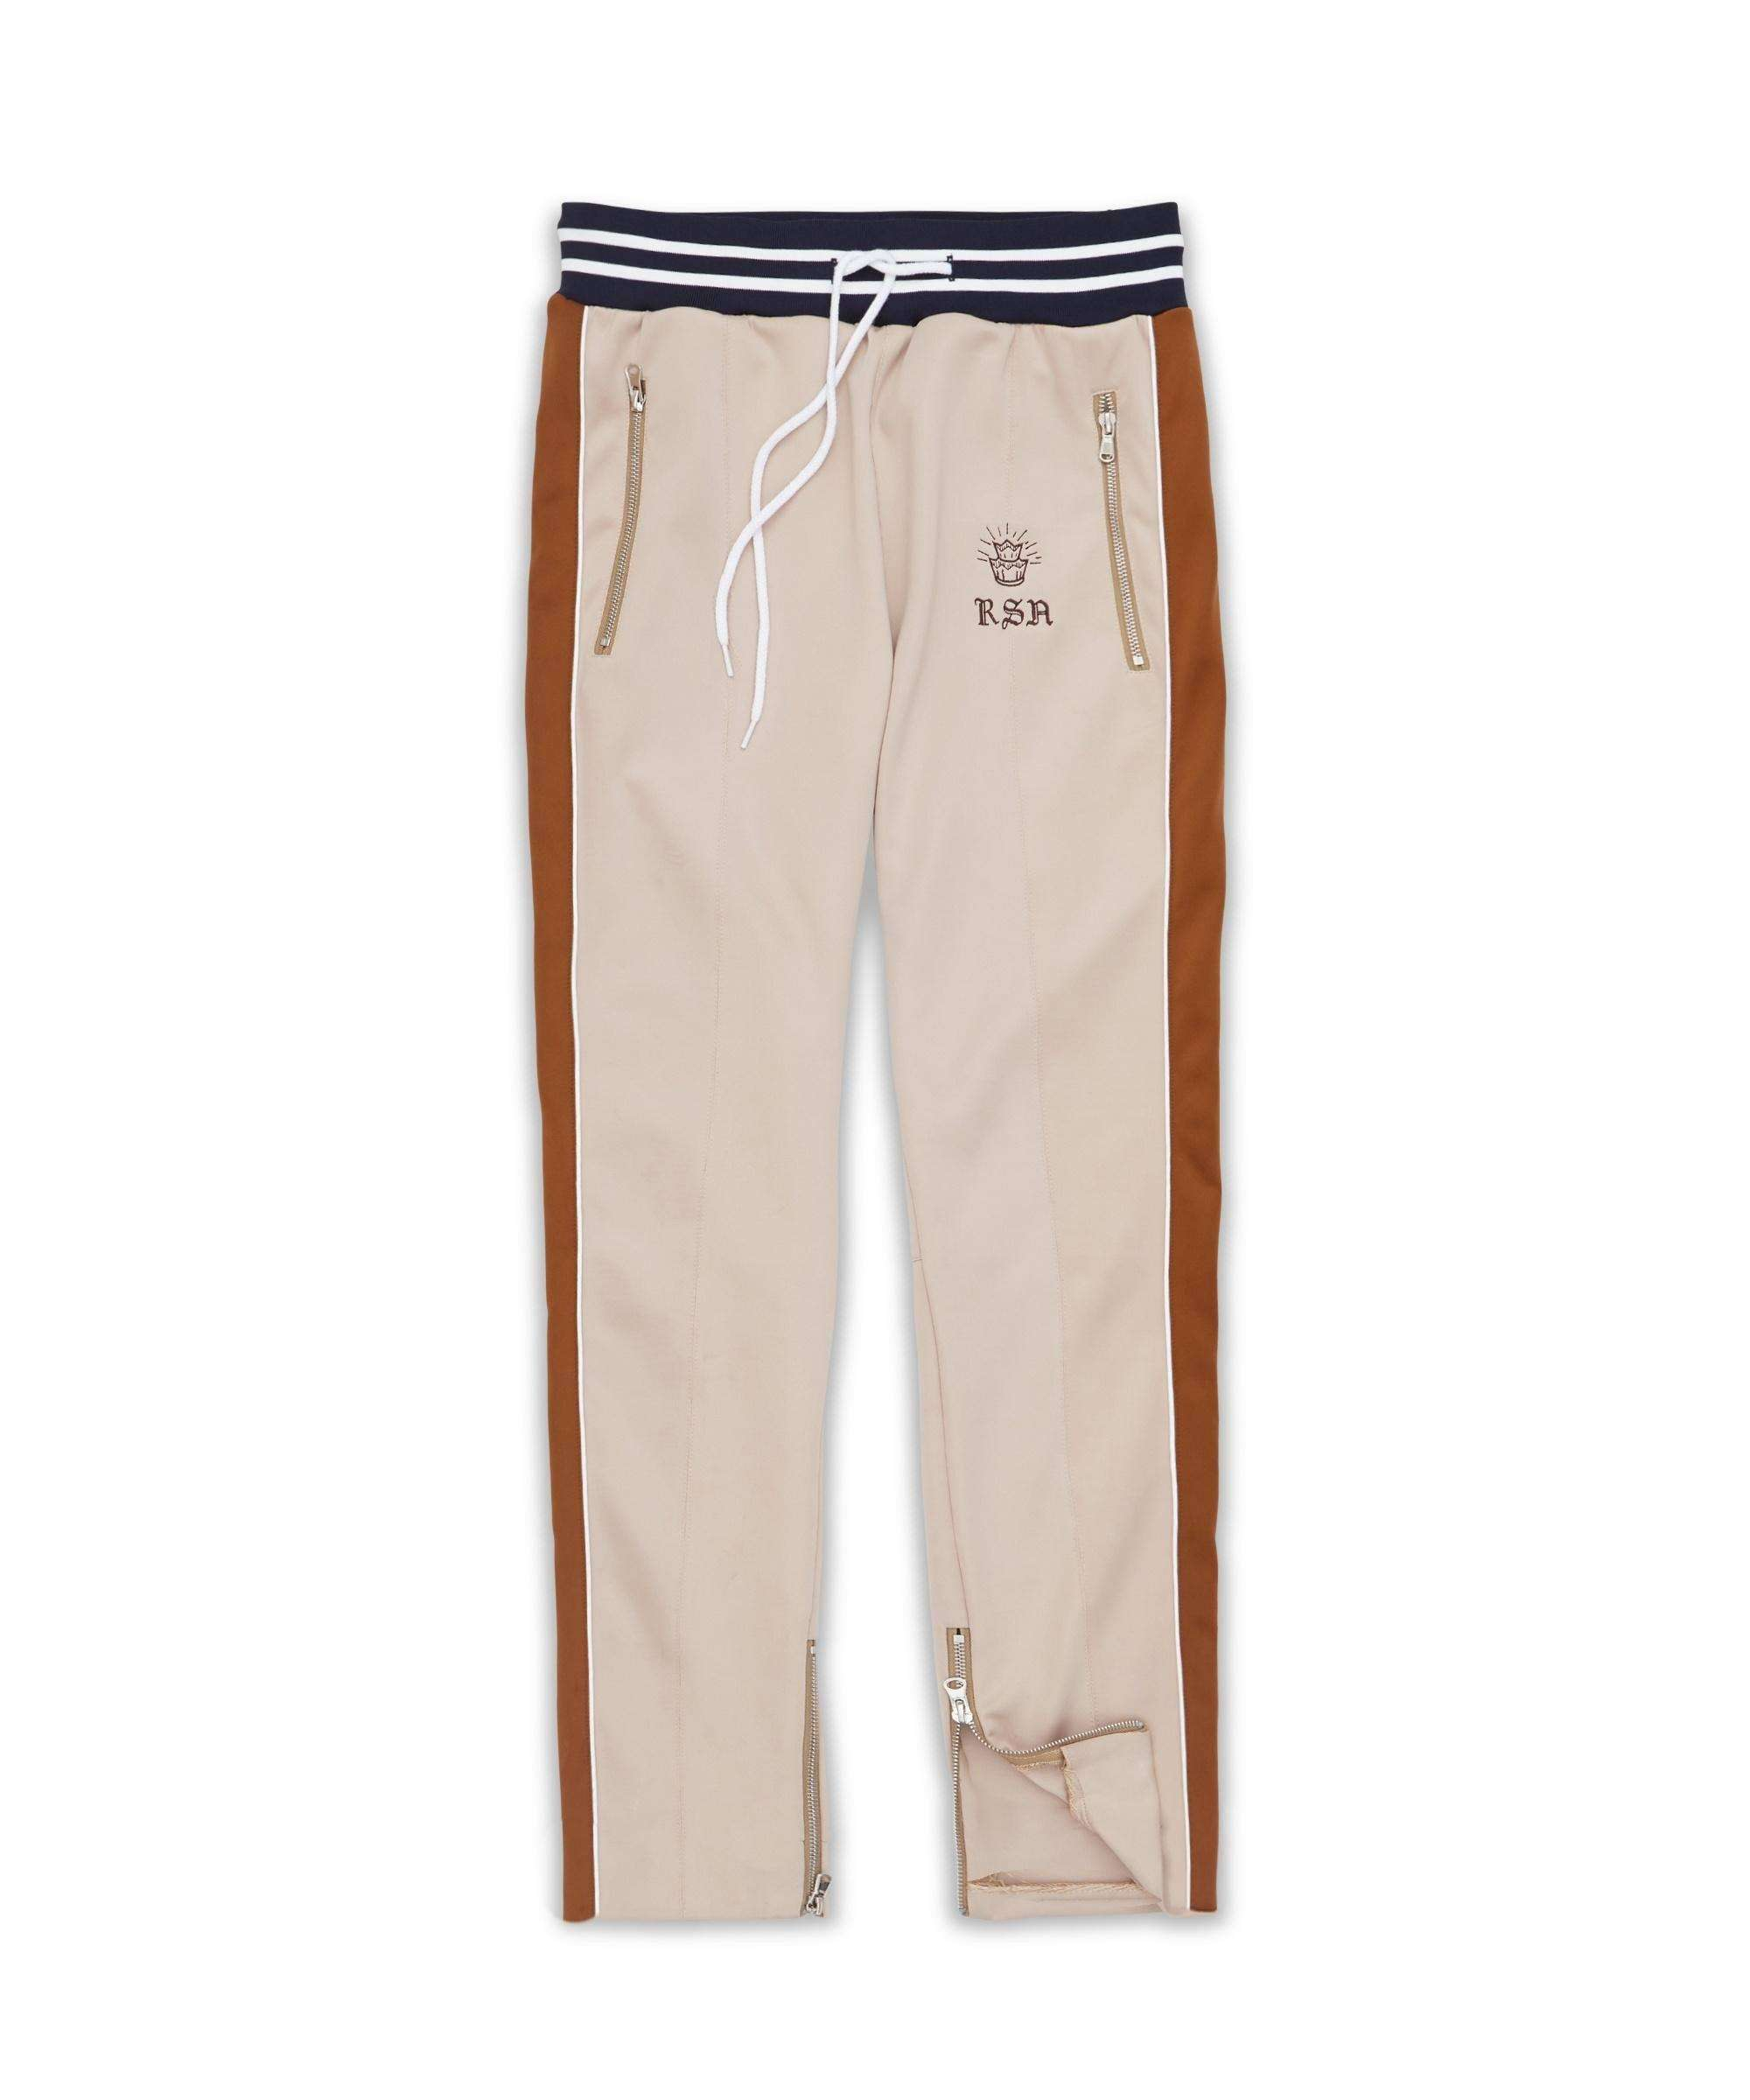 JARDIN TRACK PANT - CHESTNUT - Reason Clothing